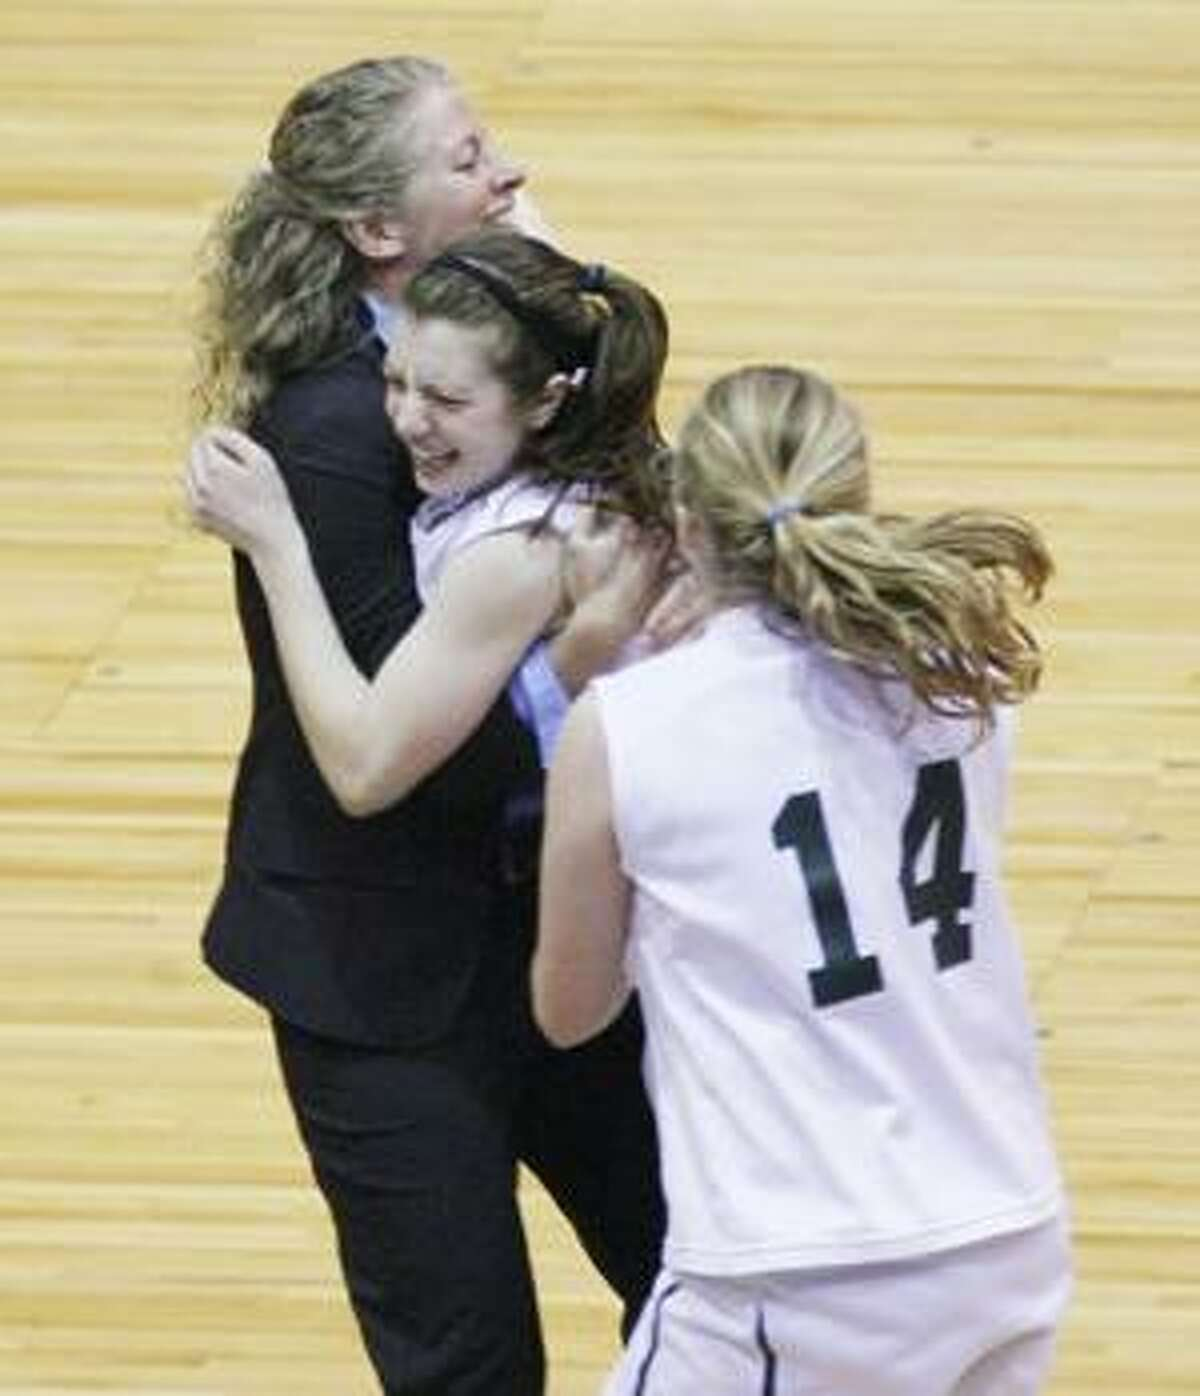 Dispatch Staff Photo by JOHN HAEGER Hamilton's Katie Weeks (11) is hugged by coach Jessica Poole as teammate Katherine Keever (14) looks on before the start of overtime against Sackets Harbor in the Class D championship in Utica on Sunday, March 6, 2011. Weeks went 3-for-3 from the foul line to send it into overtime. Hamilton won 48-45.